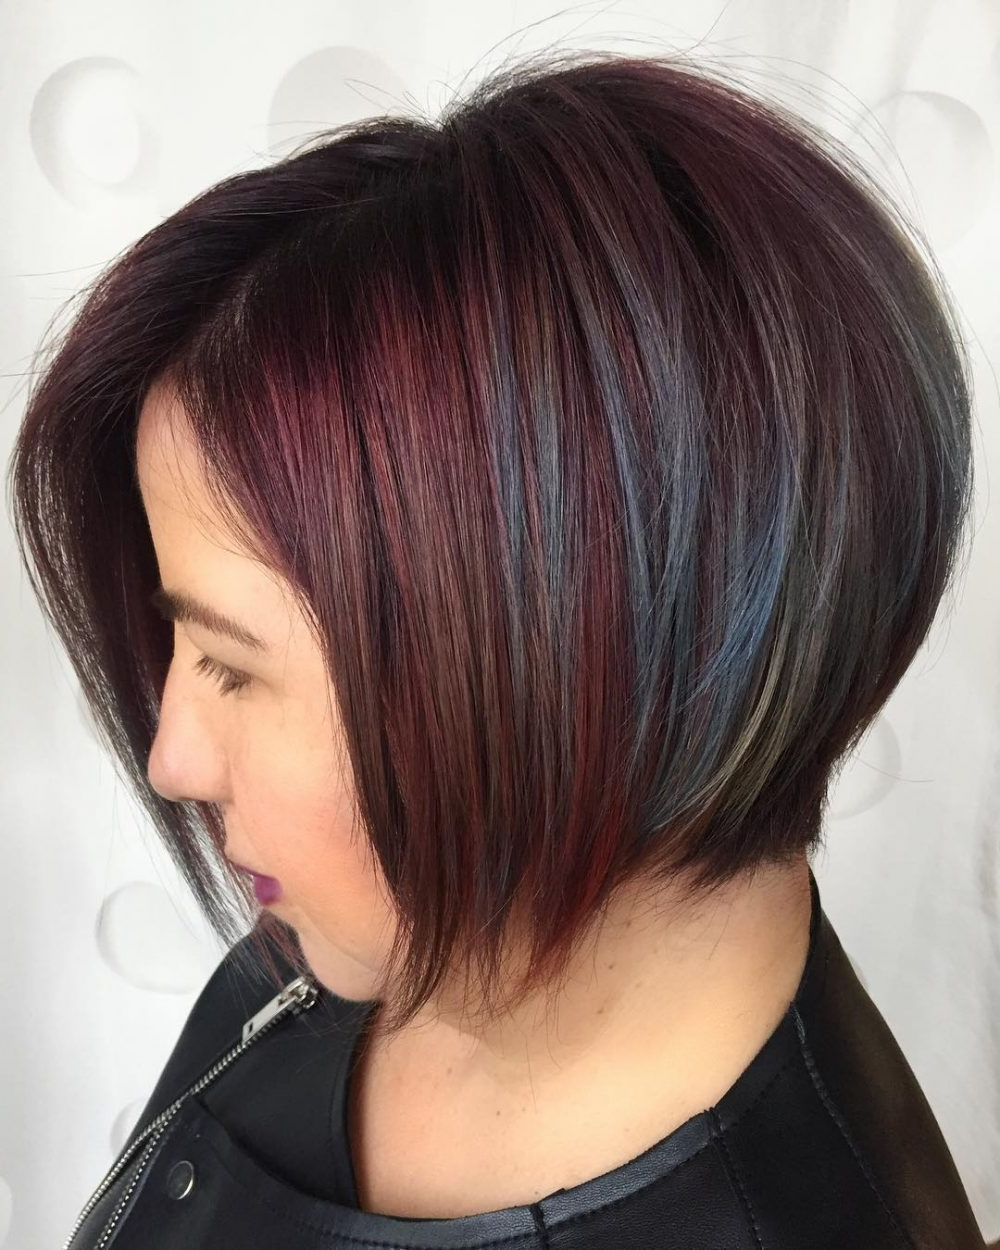 34 Greatest Short Haircuts And Hairstyles For Thick Hair For 2018 In Short Haircuts For Thick Hair Long Face (View 24 of 25)